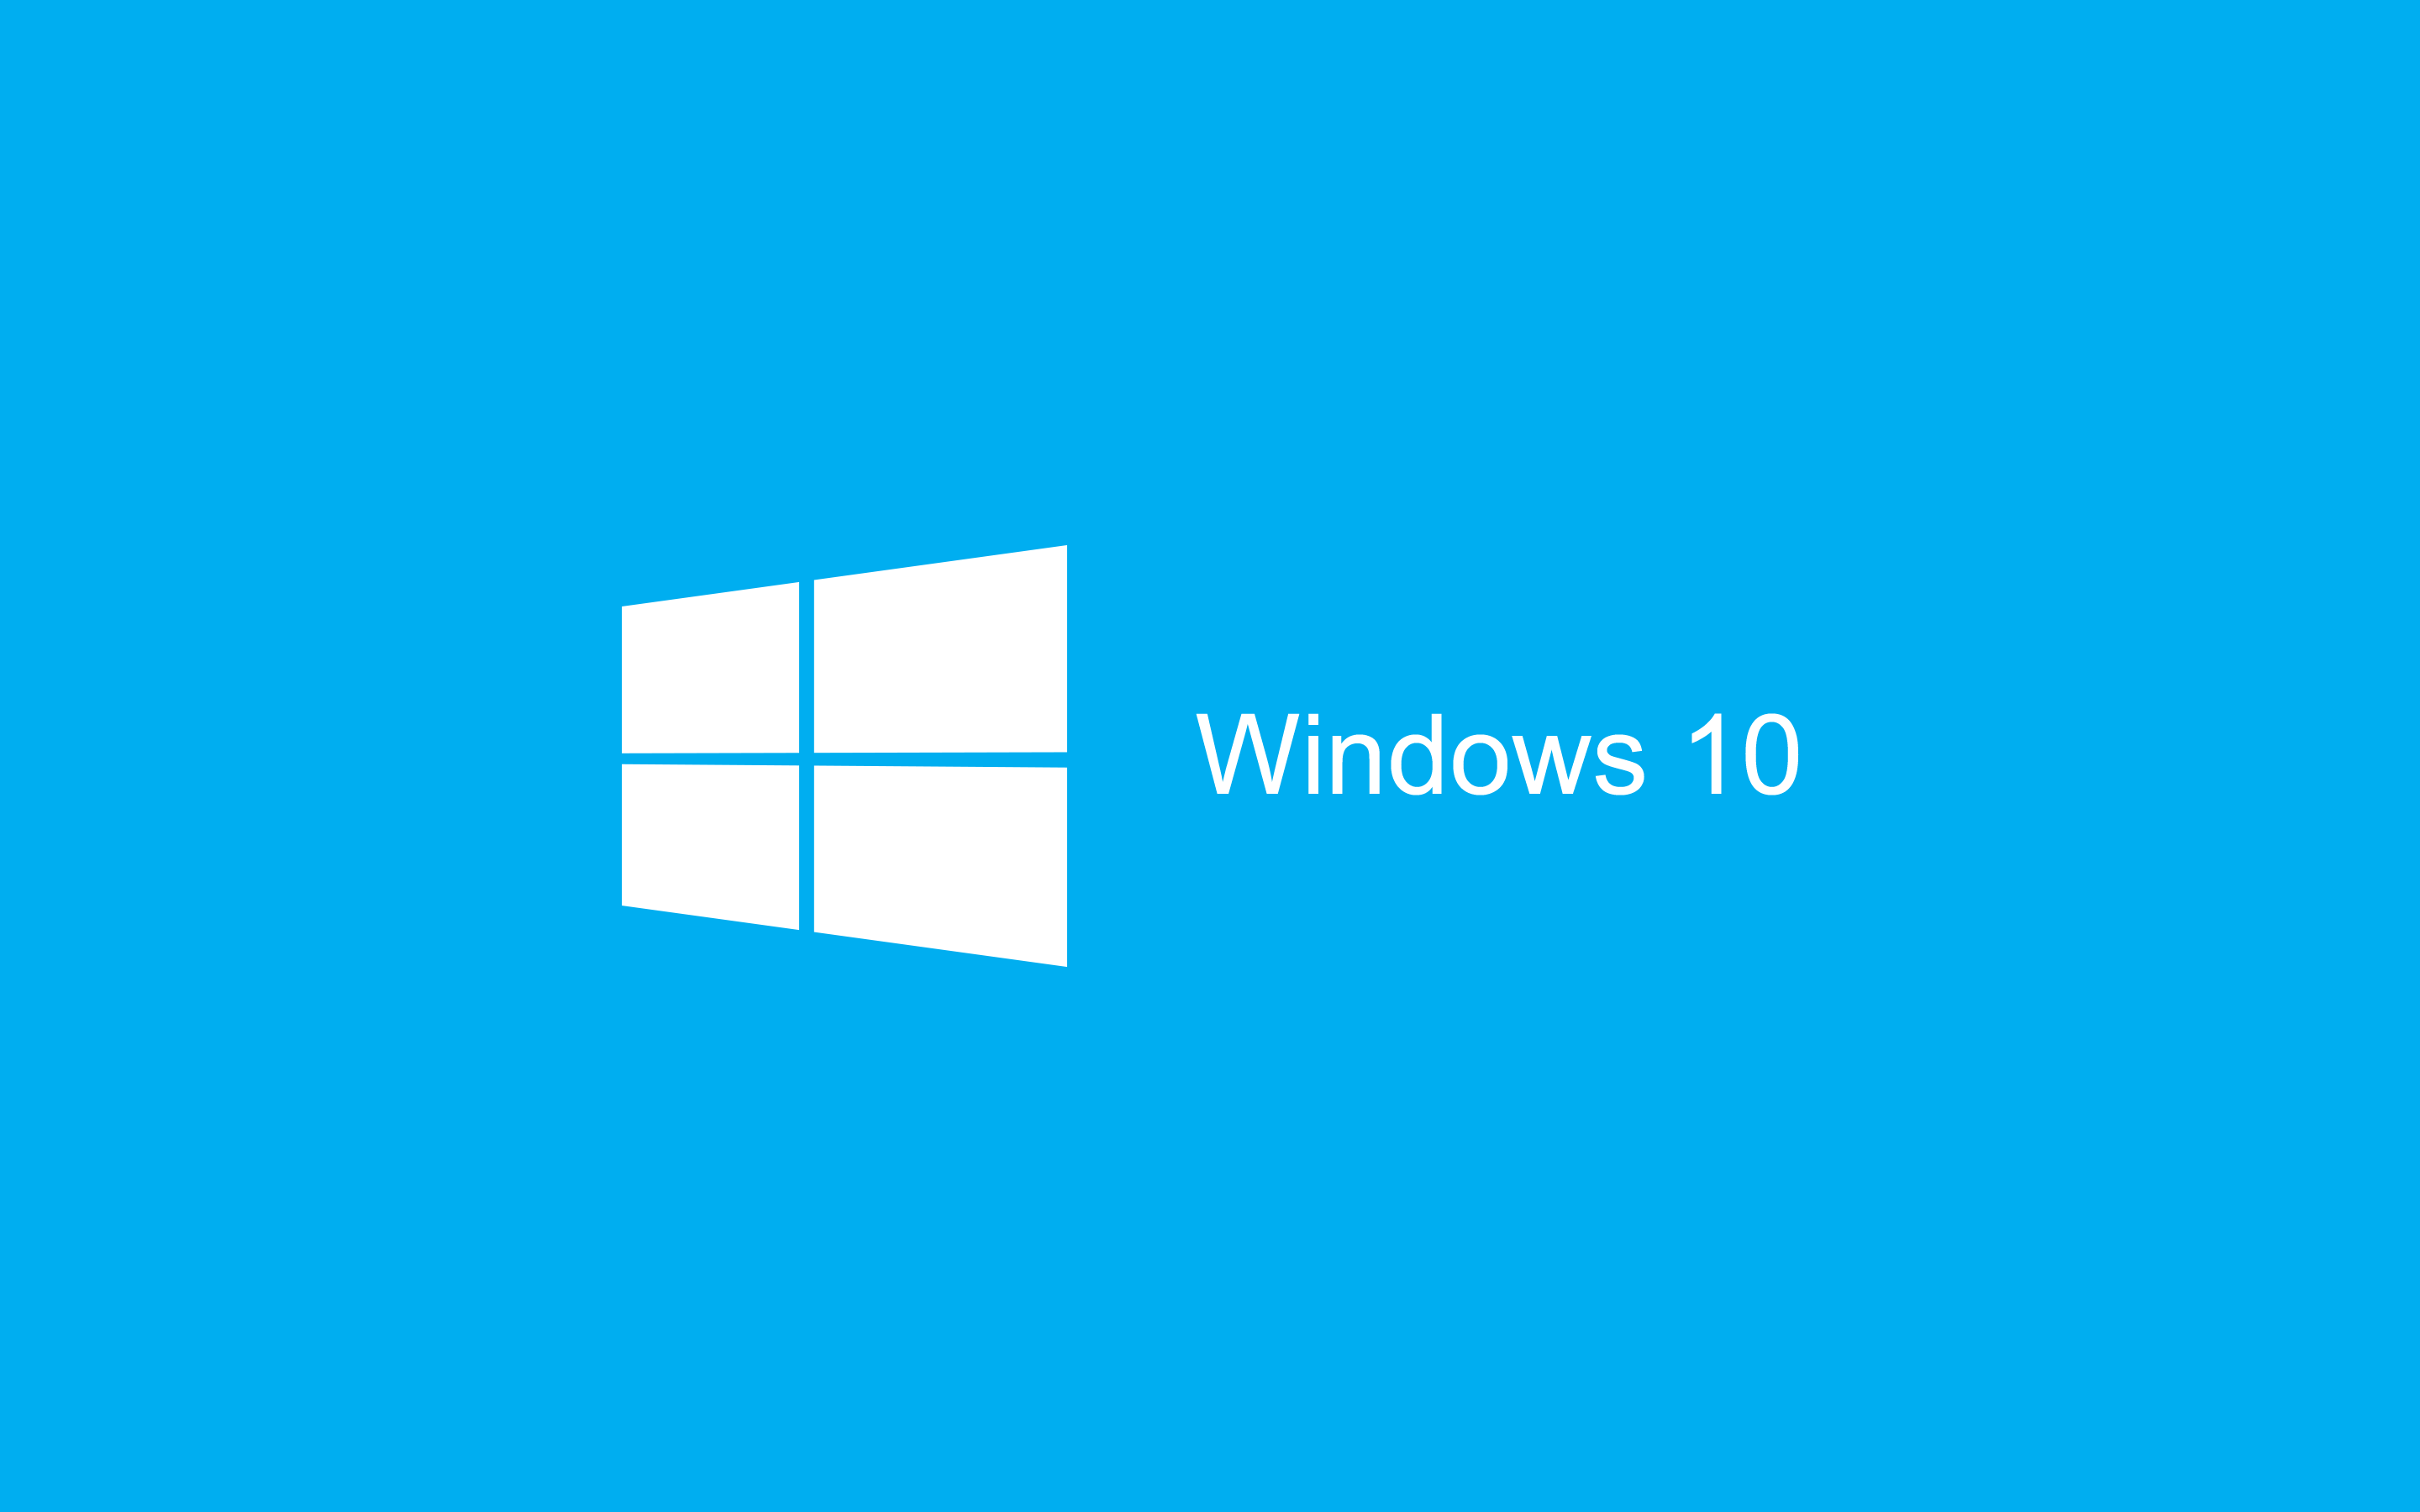 windows-10-blue-wallpaper-fond-ecran